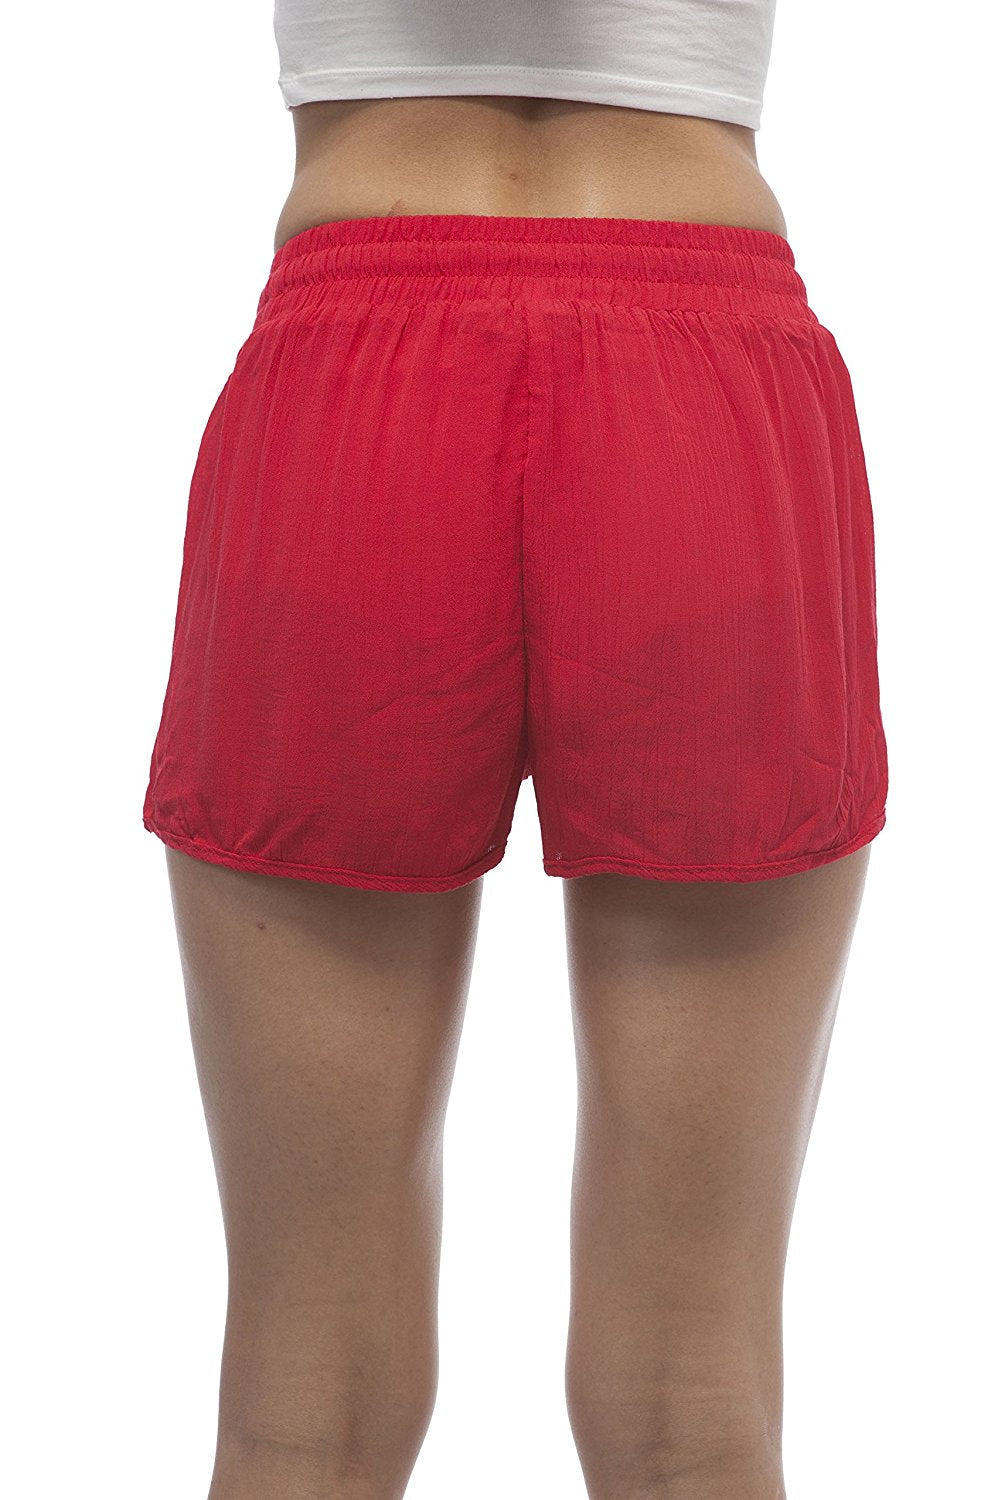 chiffon dolphin crinkled shorts with drawstring waist